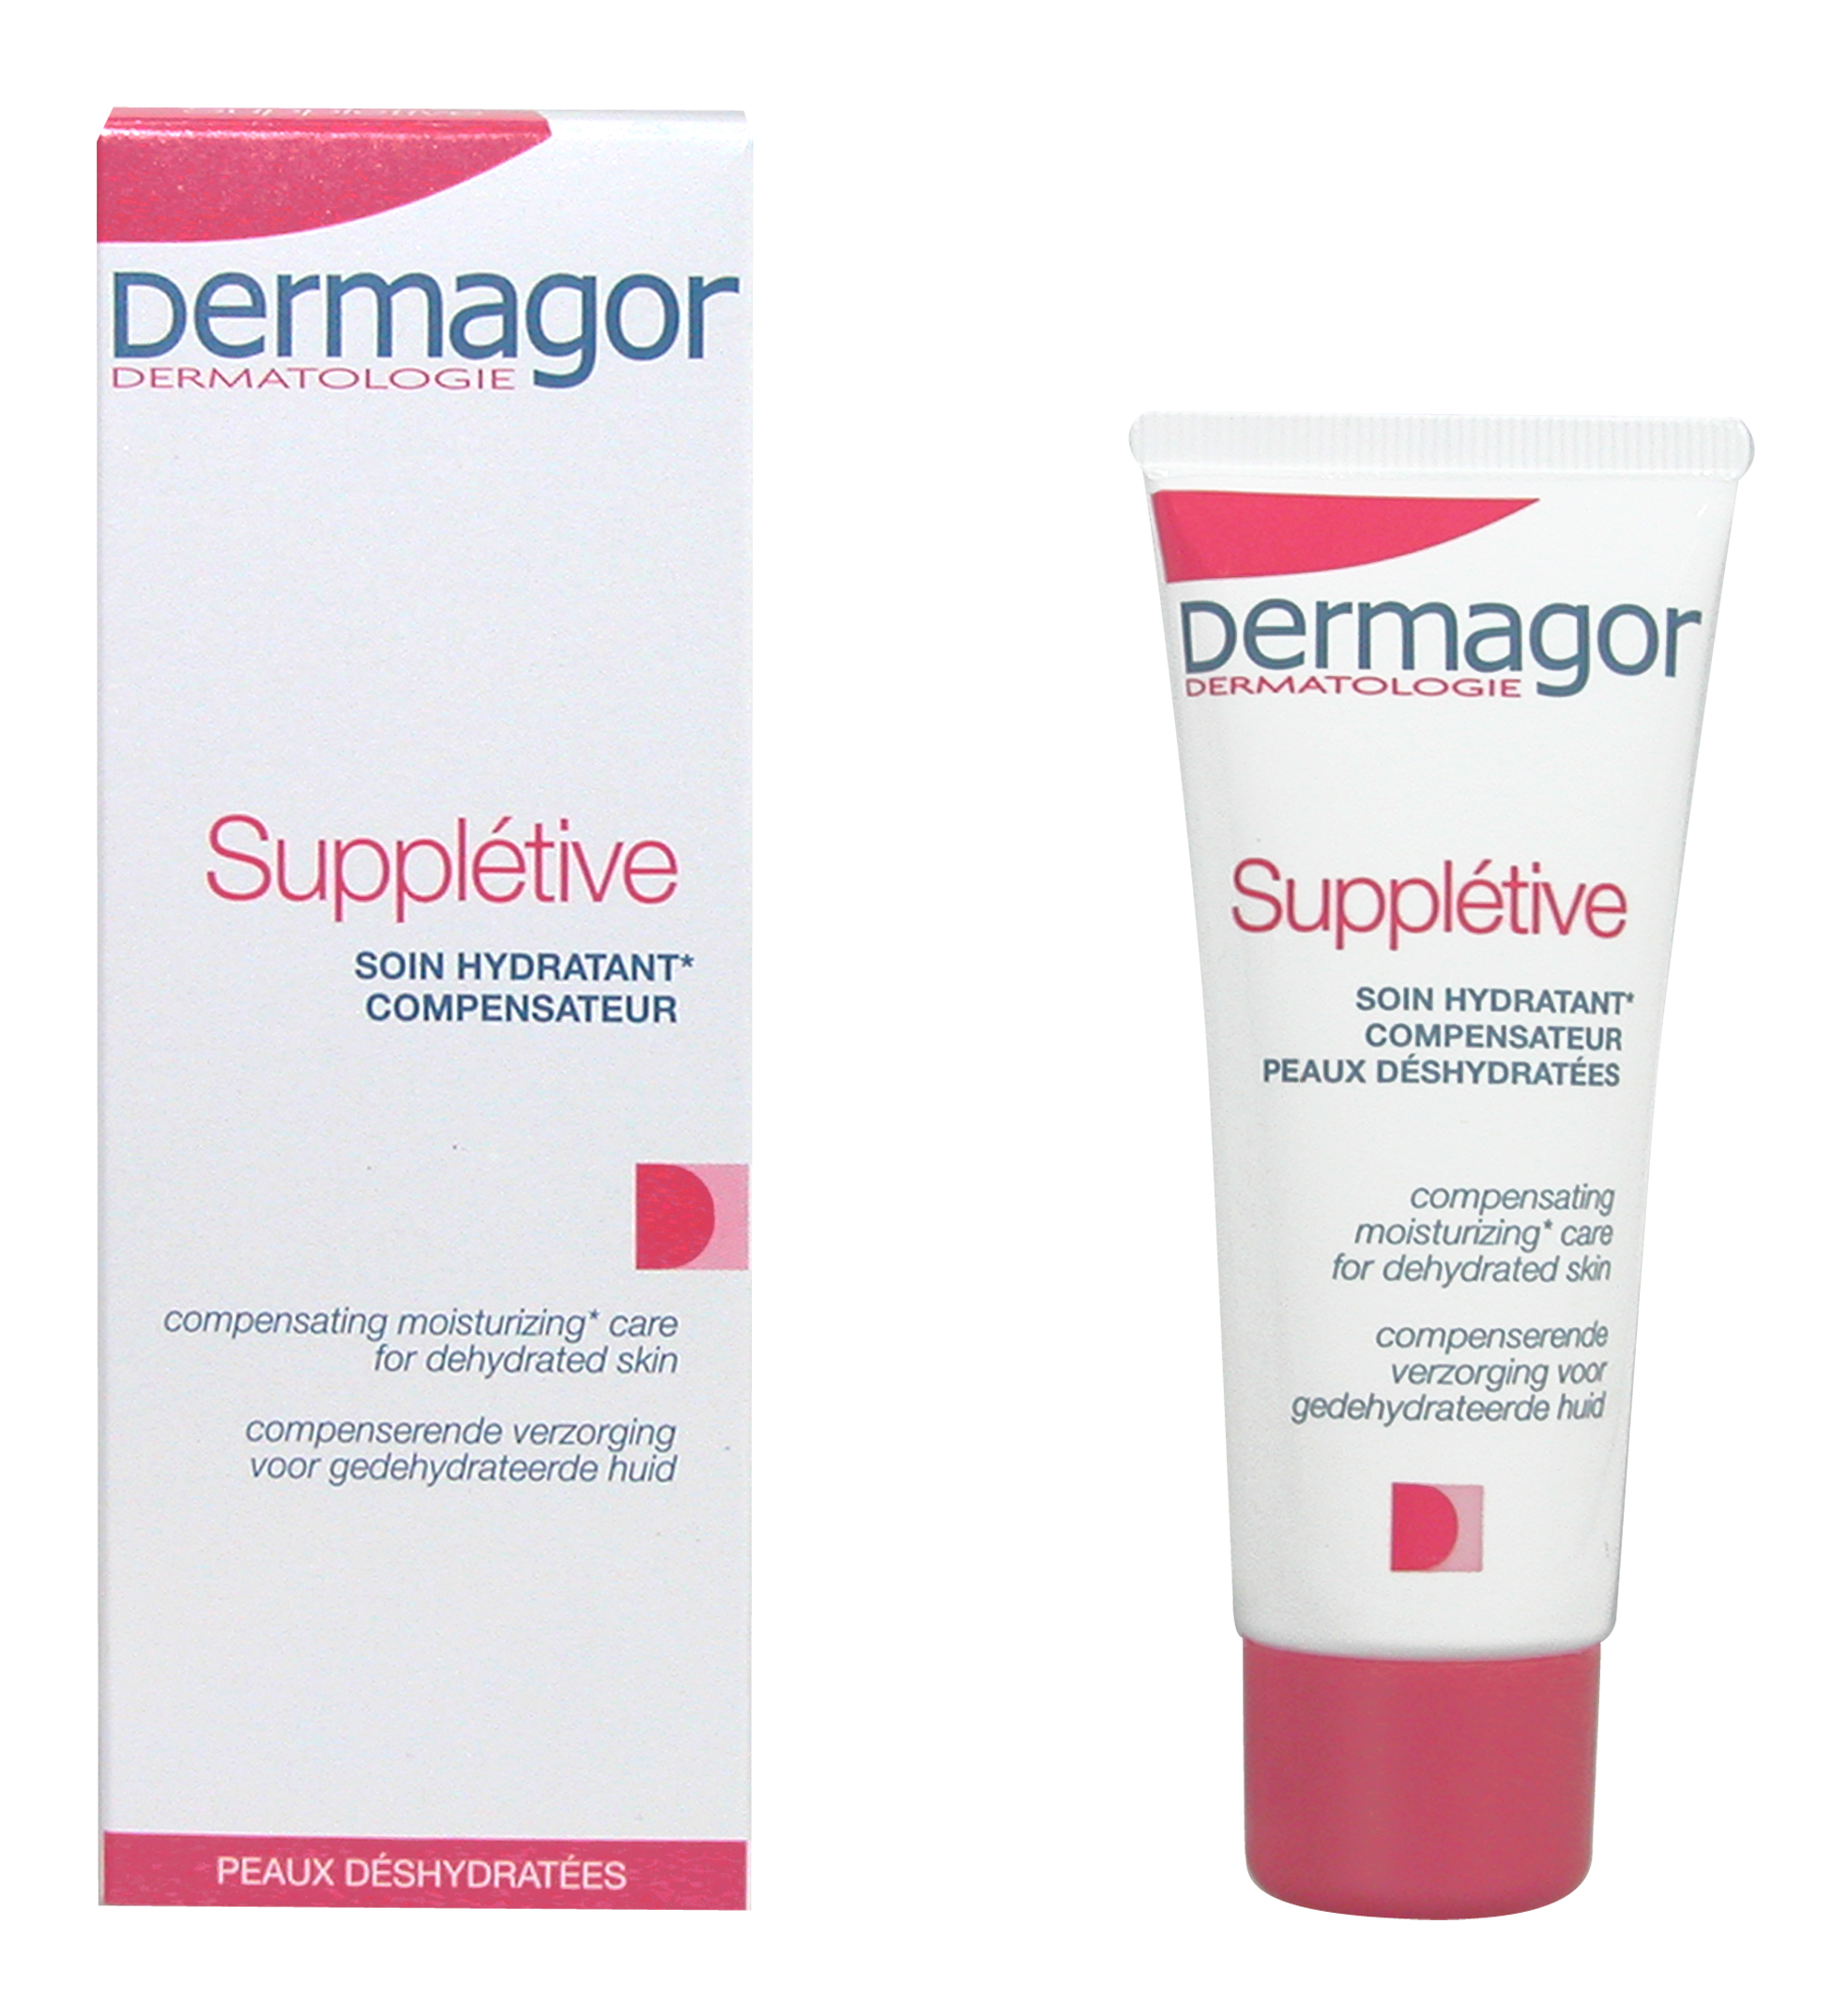 Dermagor Suppletive